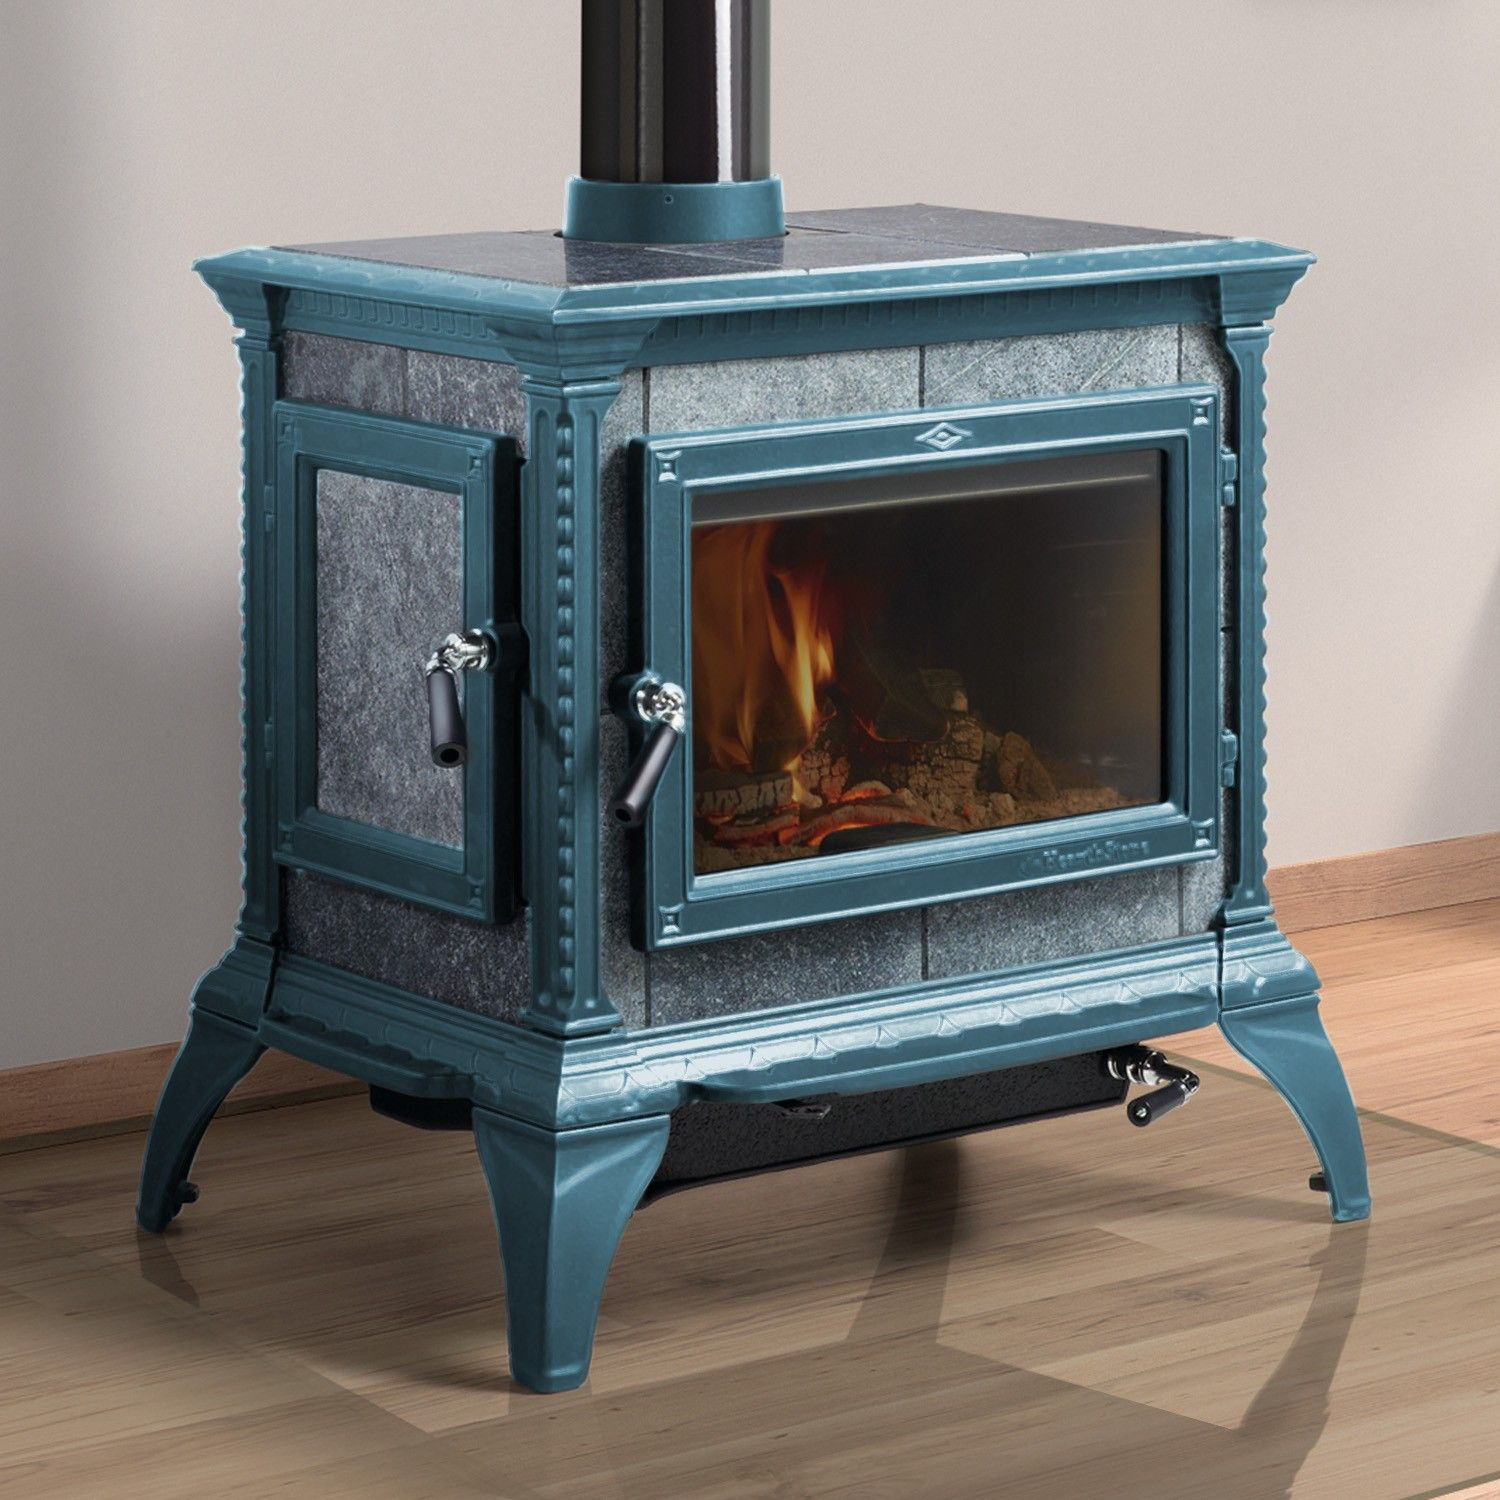 The other stove I'd love for the Carriage House: The Hearthstone Heritage in